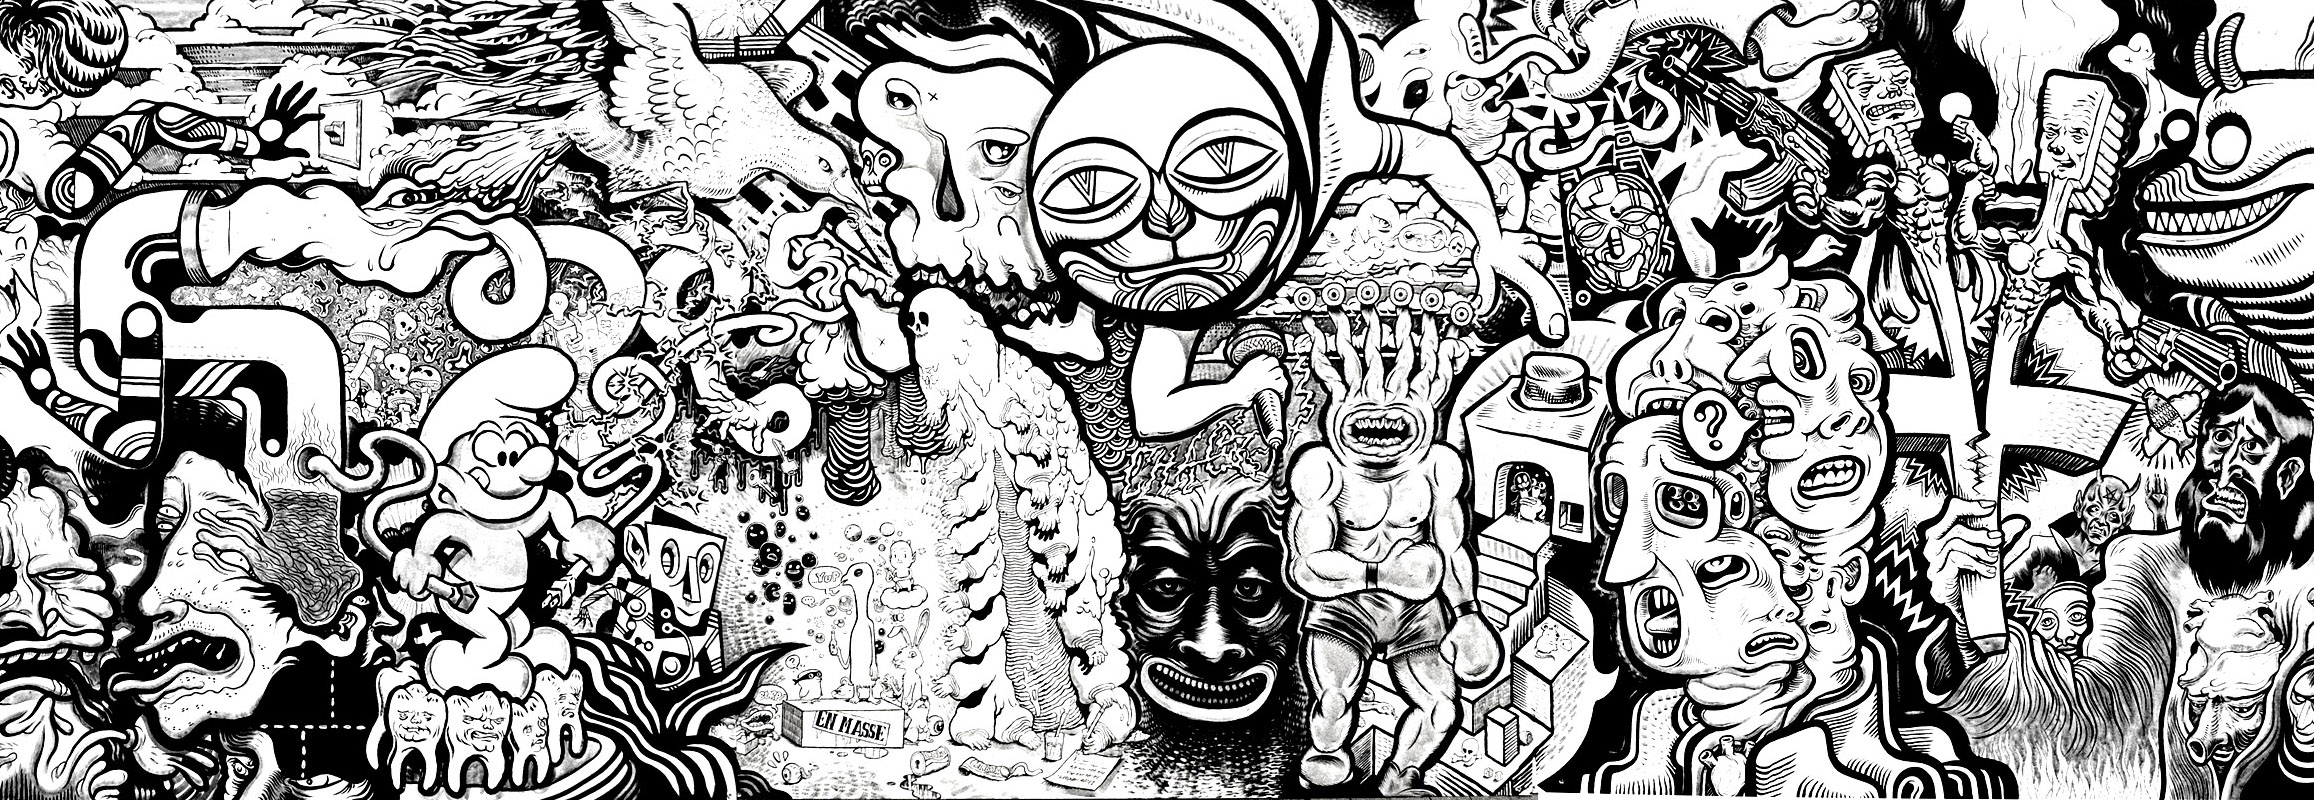 street art graffiti coloring pages 23 amazing image of graffiti coloring pages birijuscom graffiti coloring street art pages